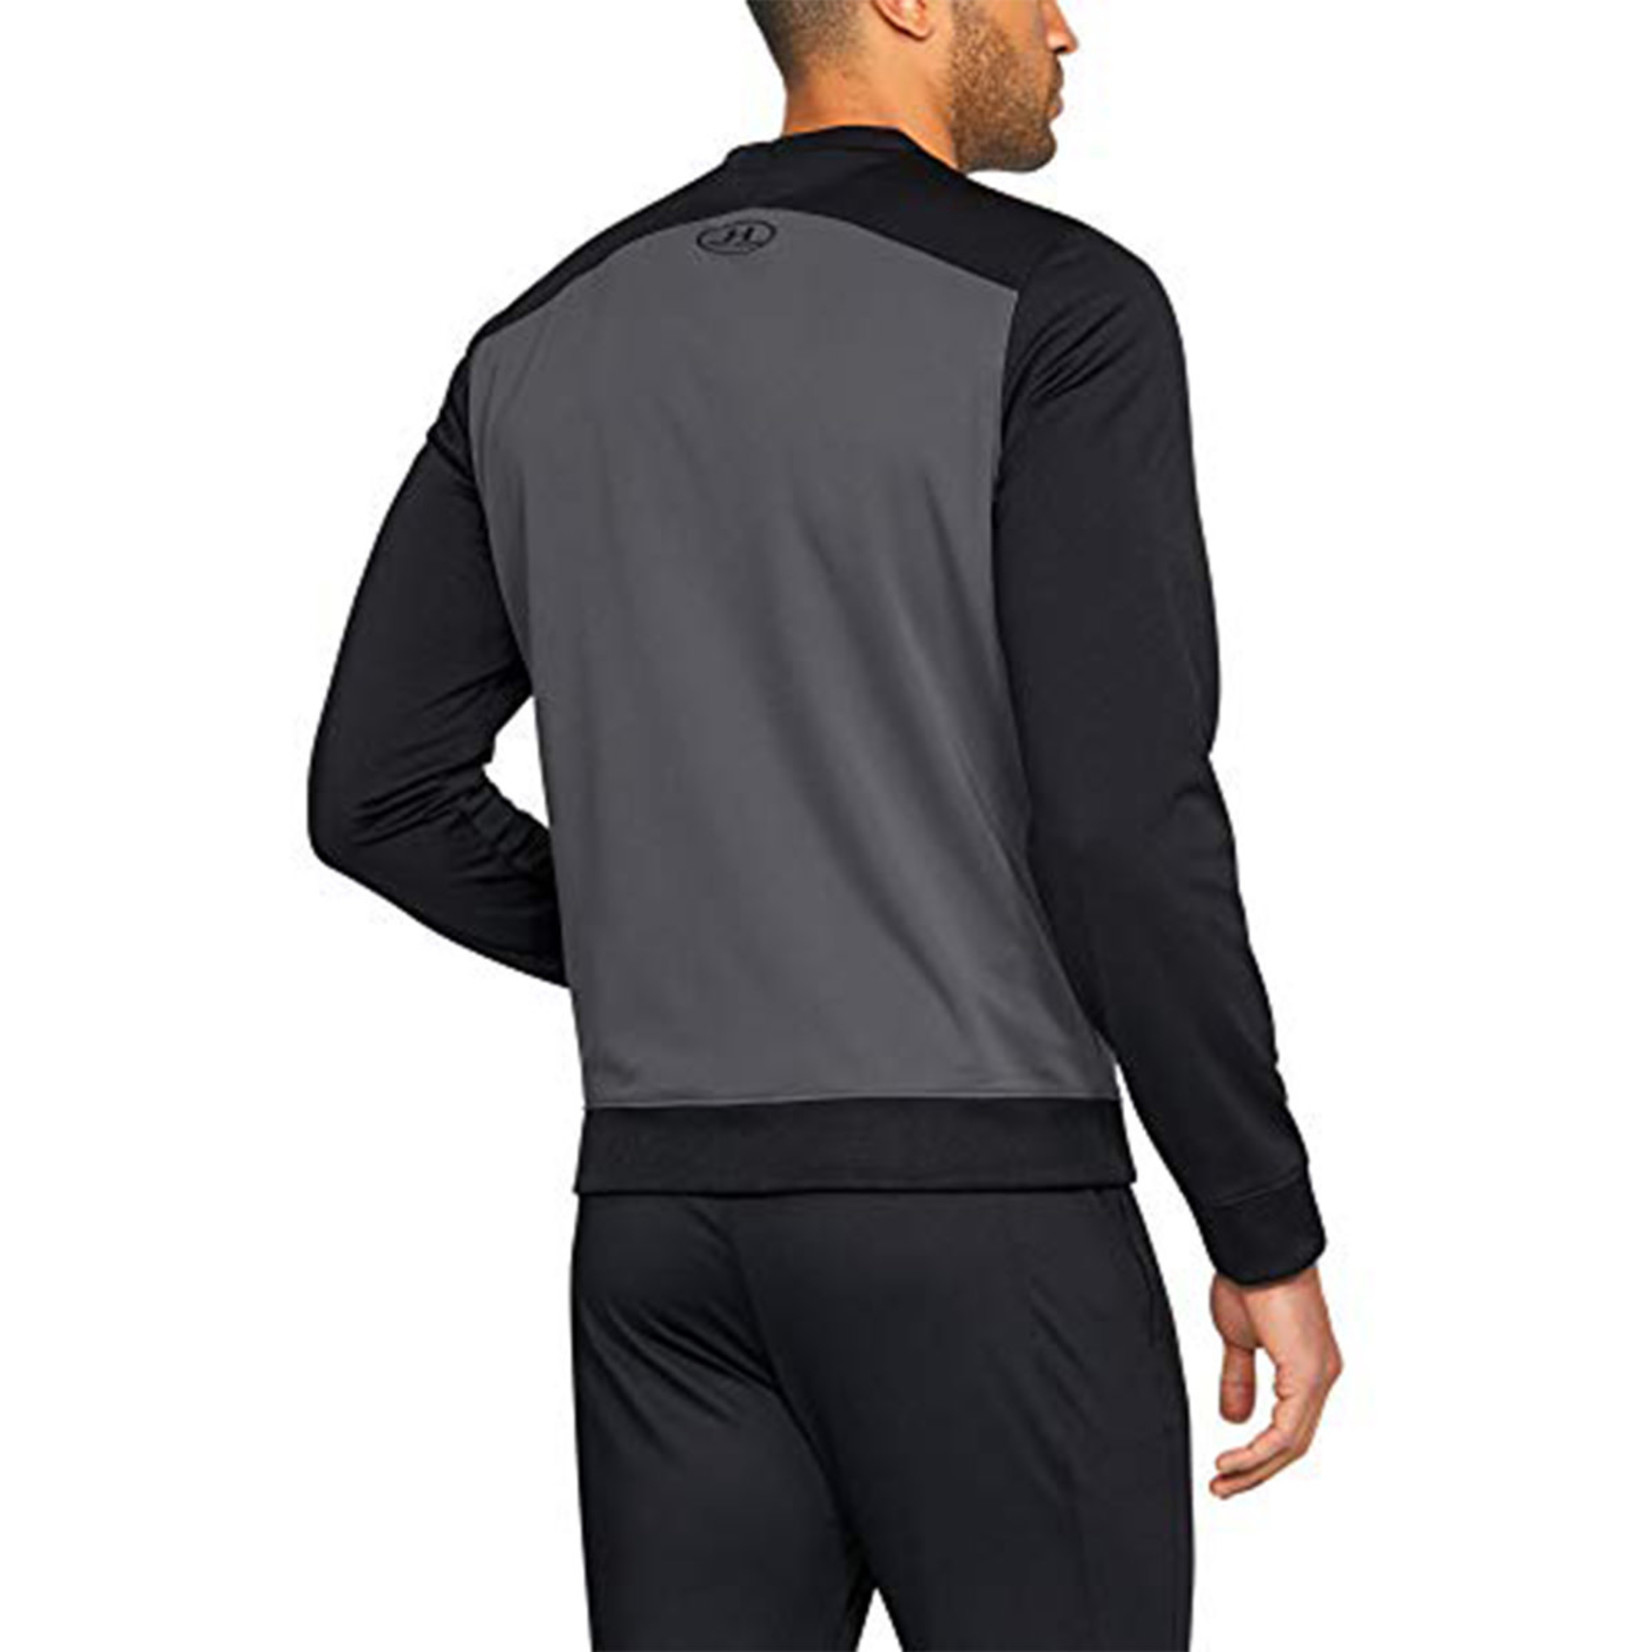 UNDER ARMOUR CHALLENGER II JACKET YOUTH